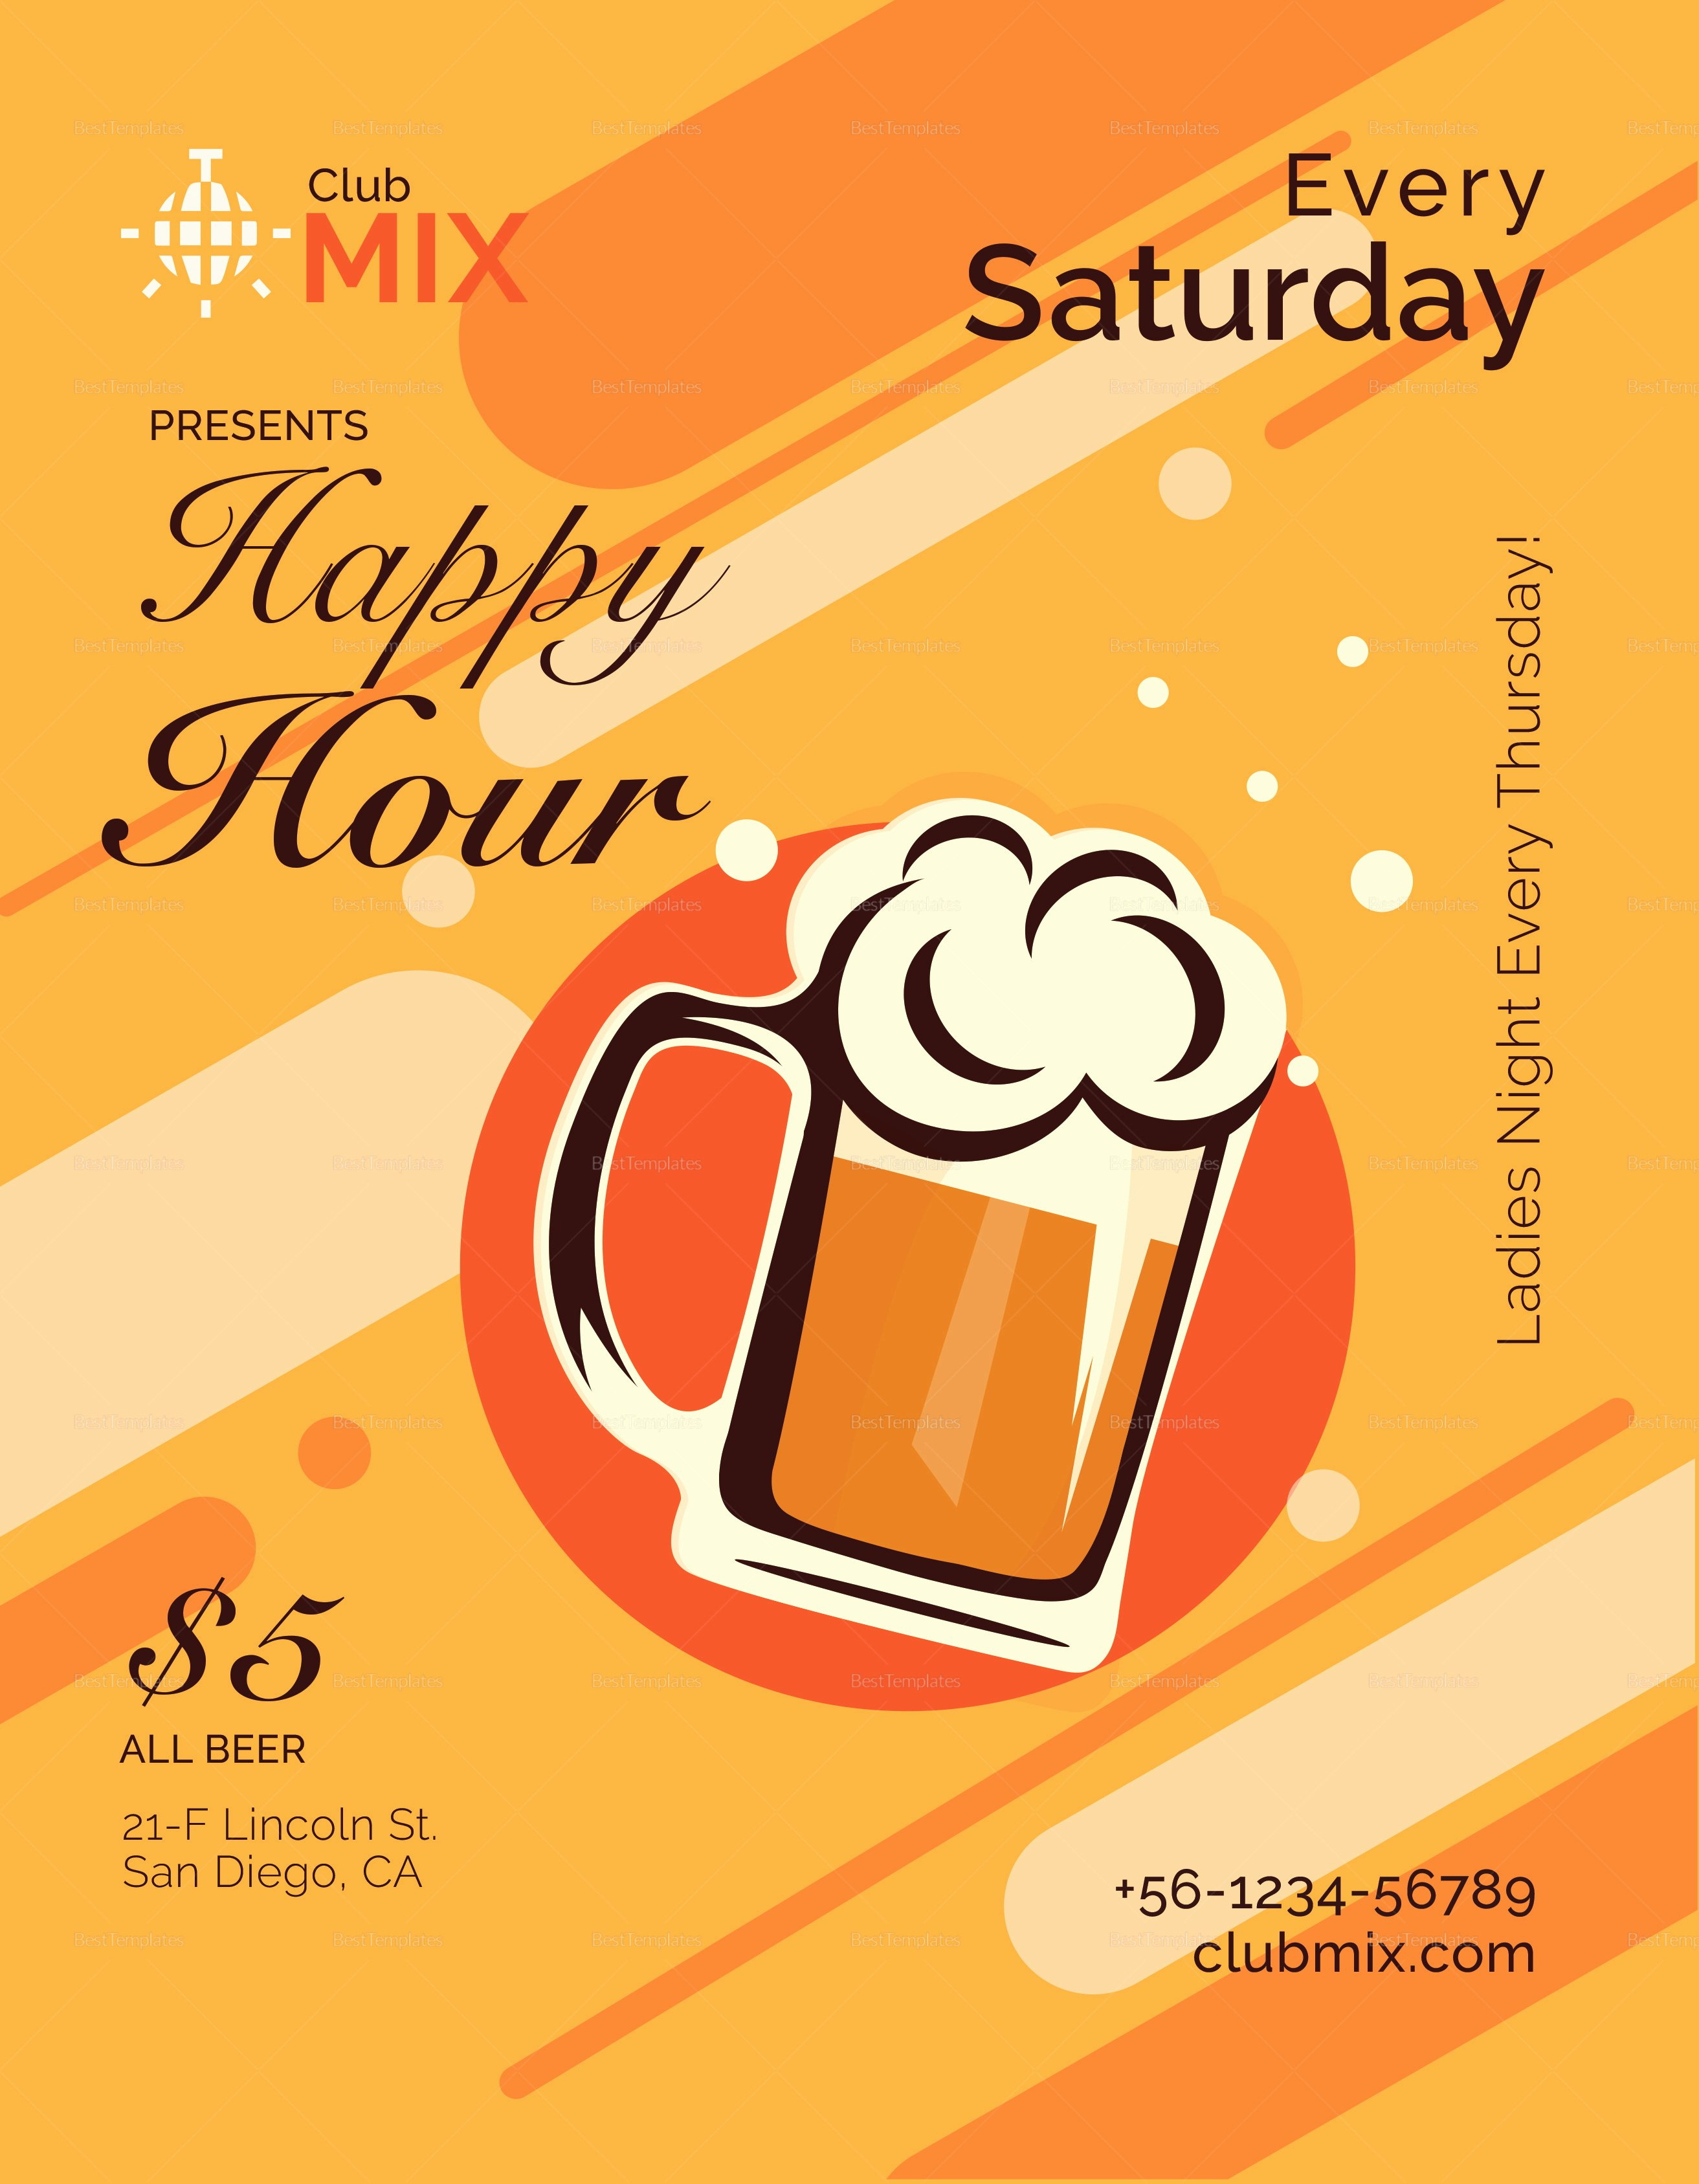 Happy Hour Flyer Templates Free New Happy Hour Flyer Design Template In Psd Word Publisher